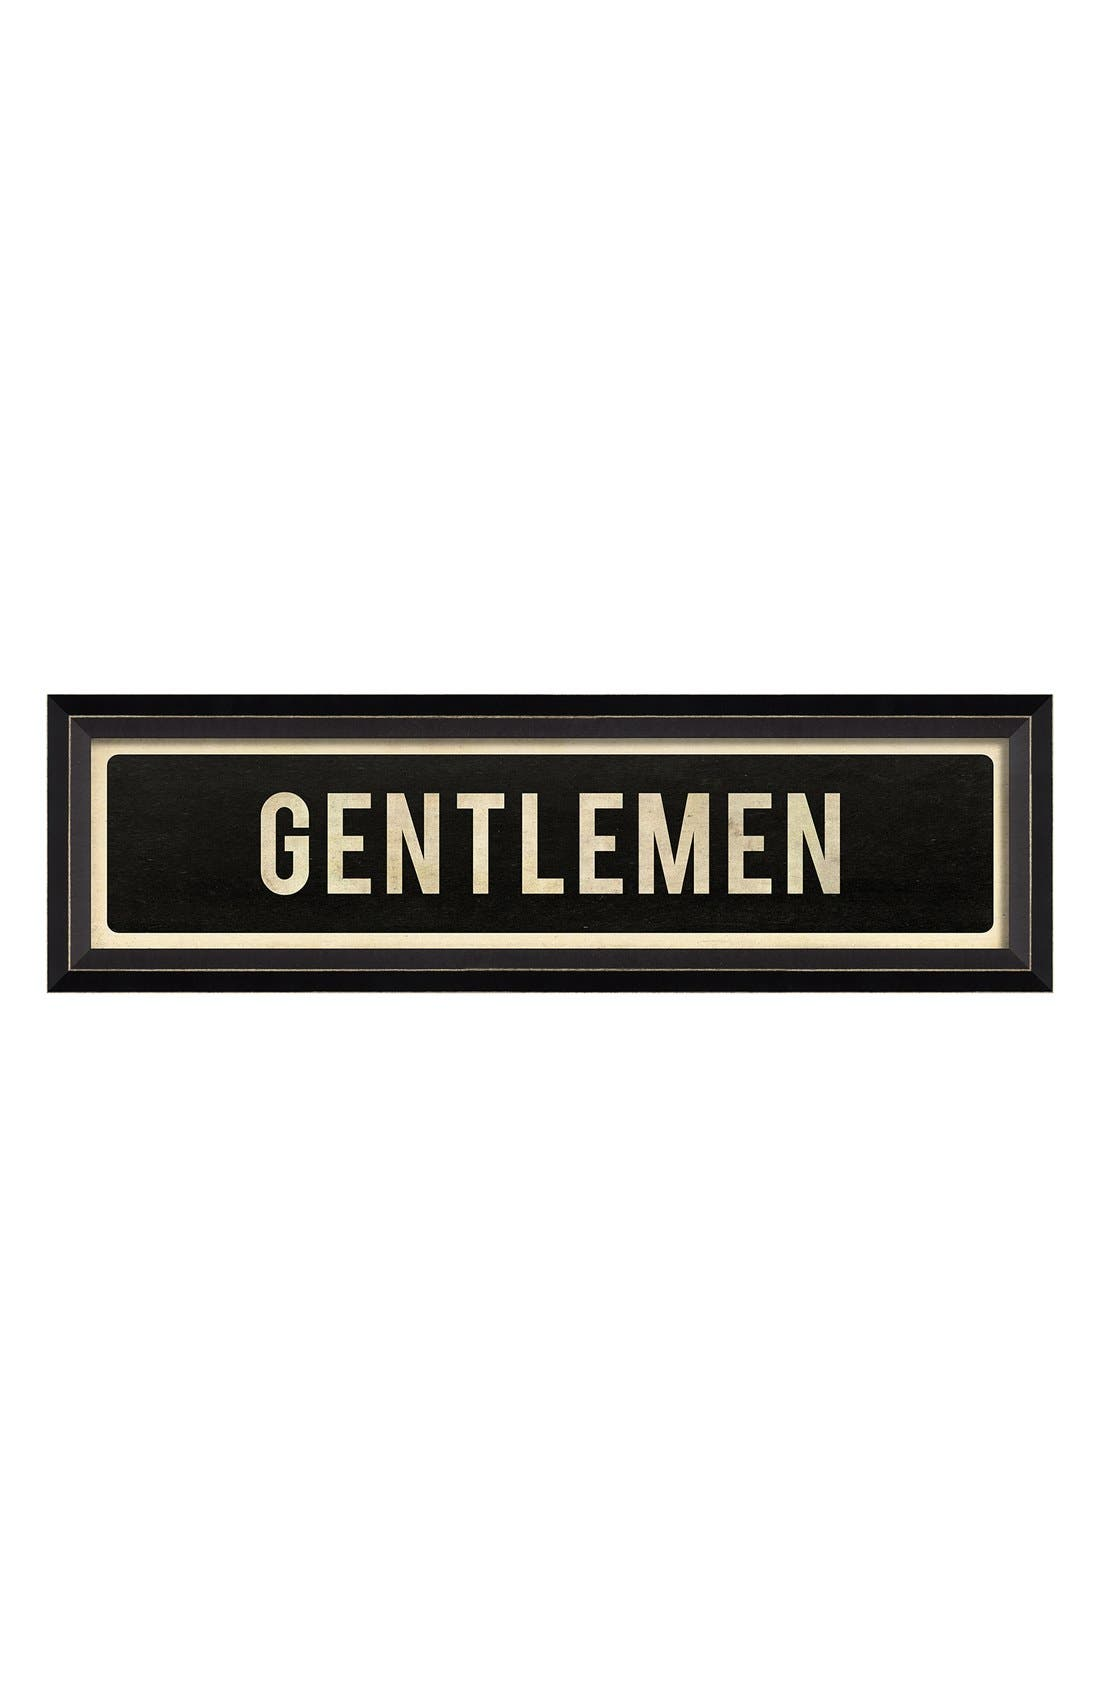 Main Image - Spicher and Company 'Gentlemen' Vintage Look Sign Artwork